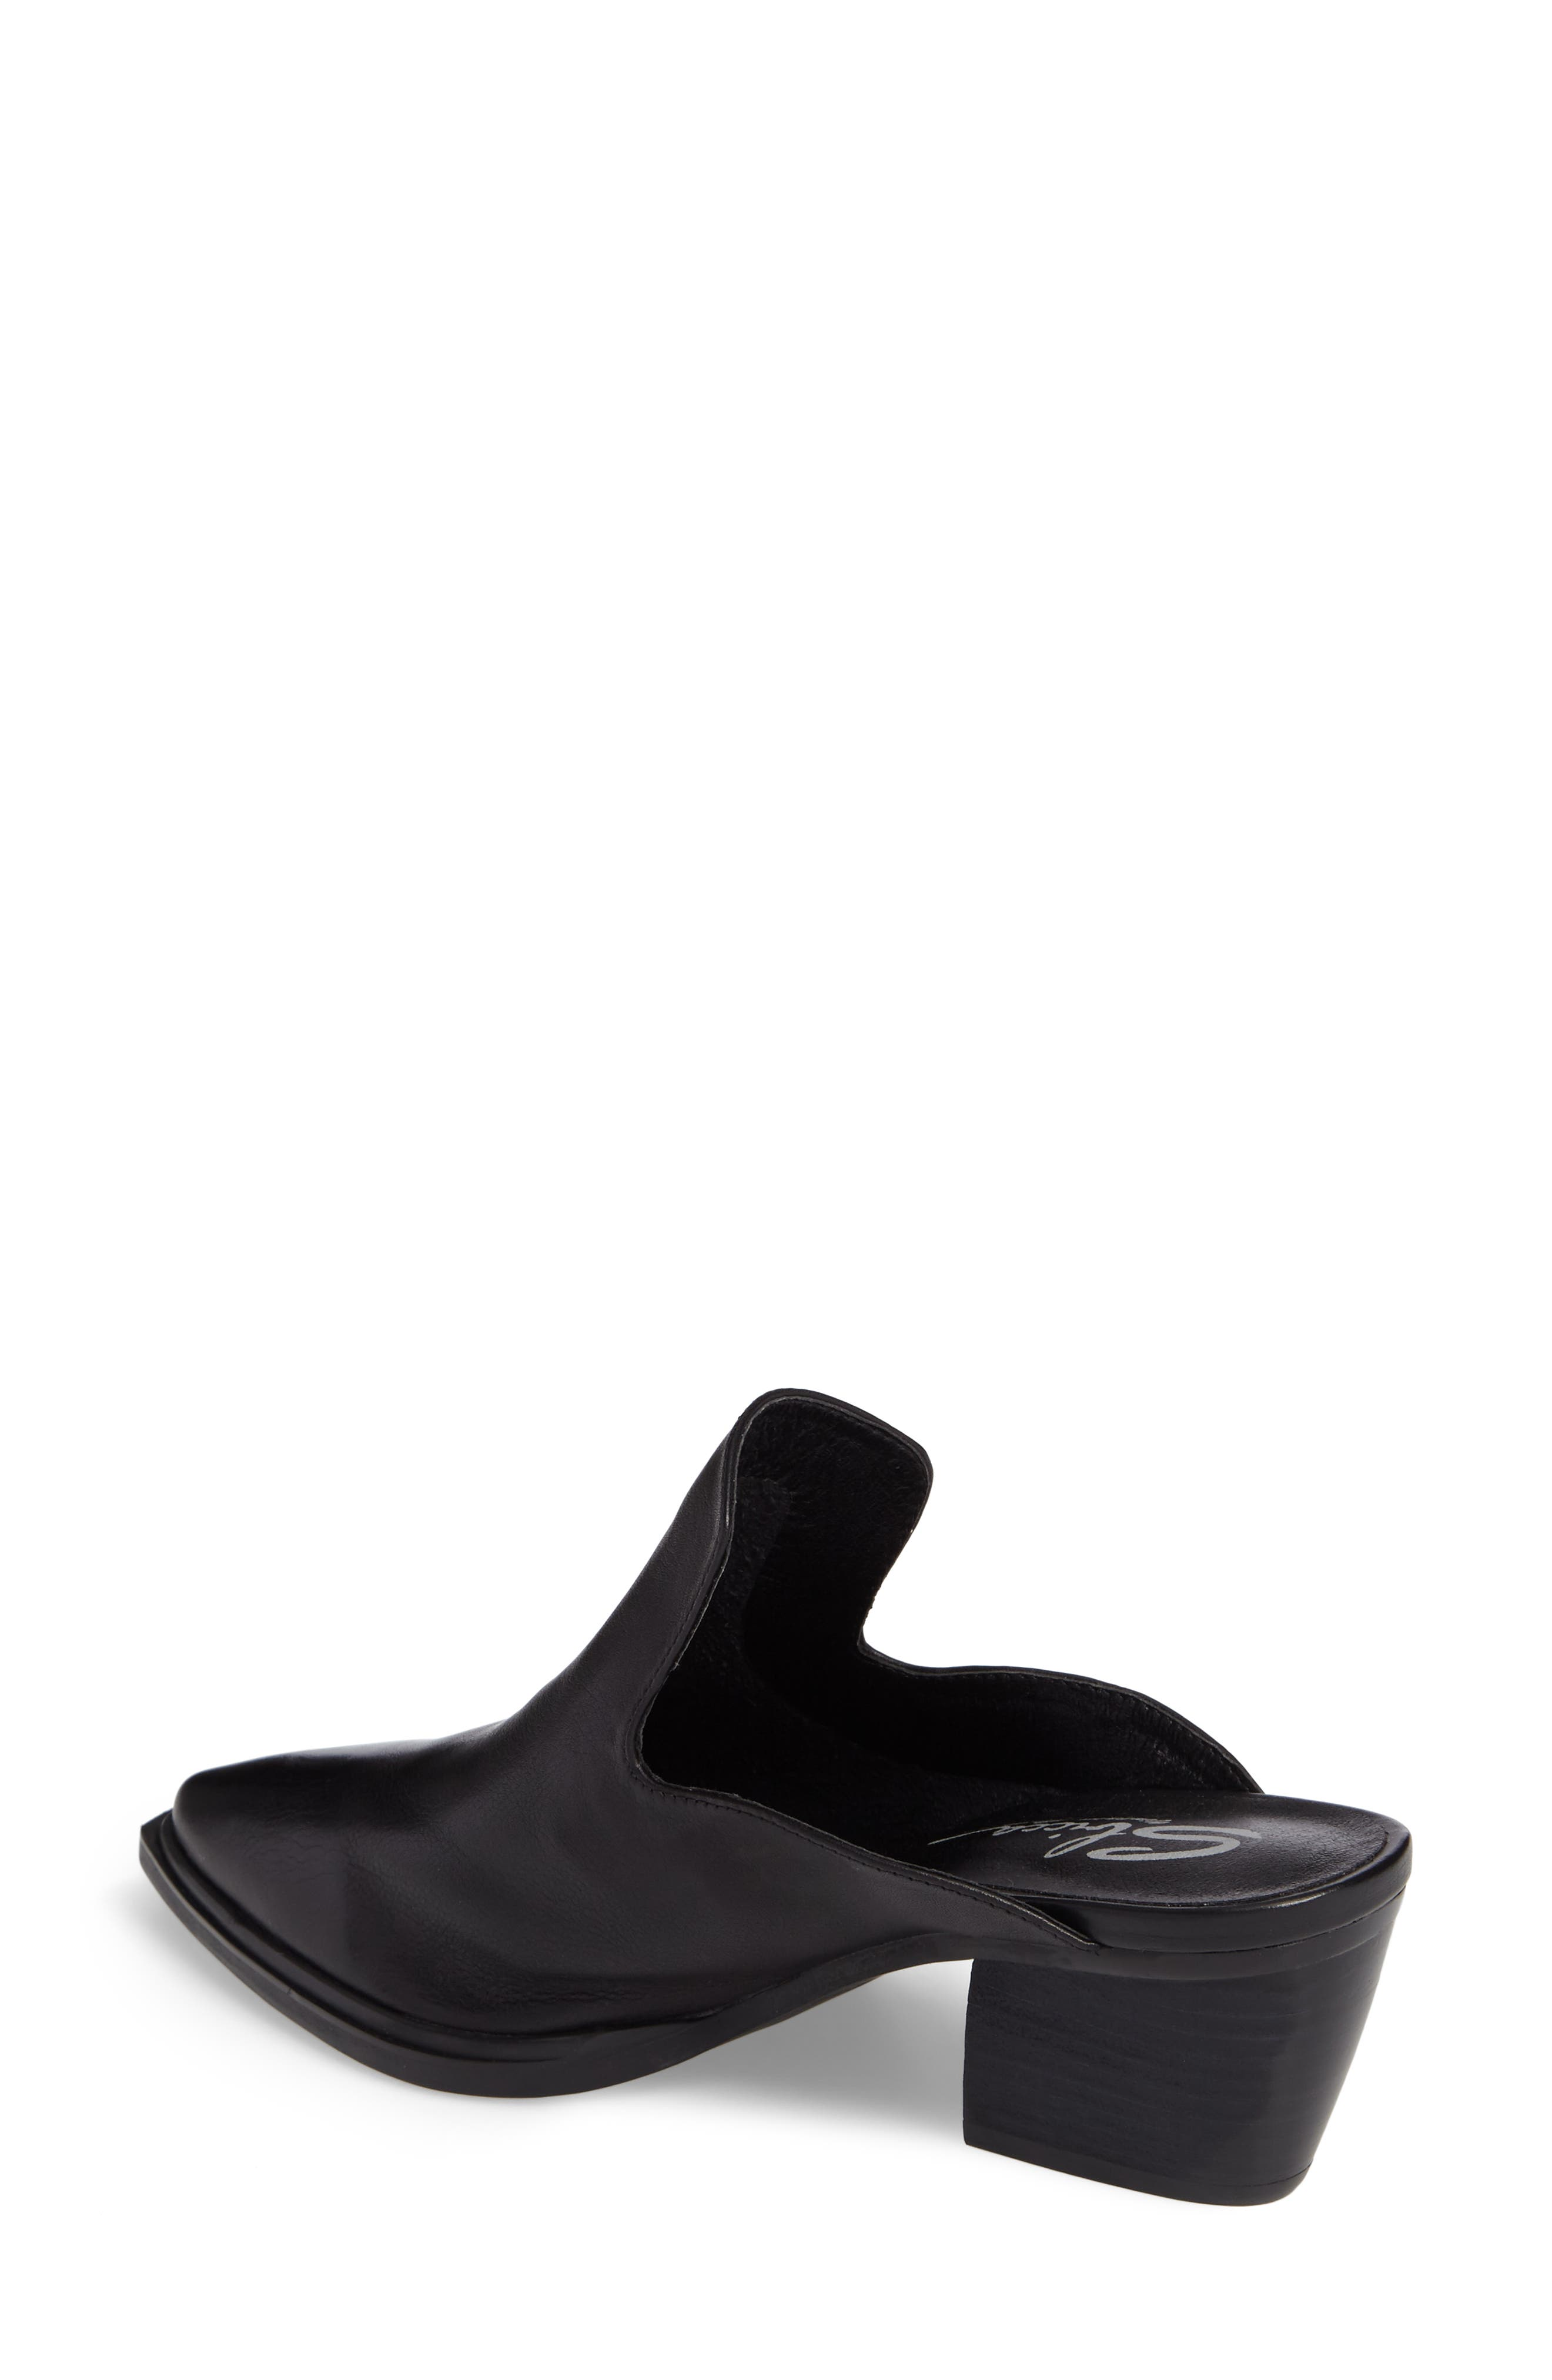 Mulah Pointy Toe Mule,                             Alternate thumbnail 2, color,                             Black Leather